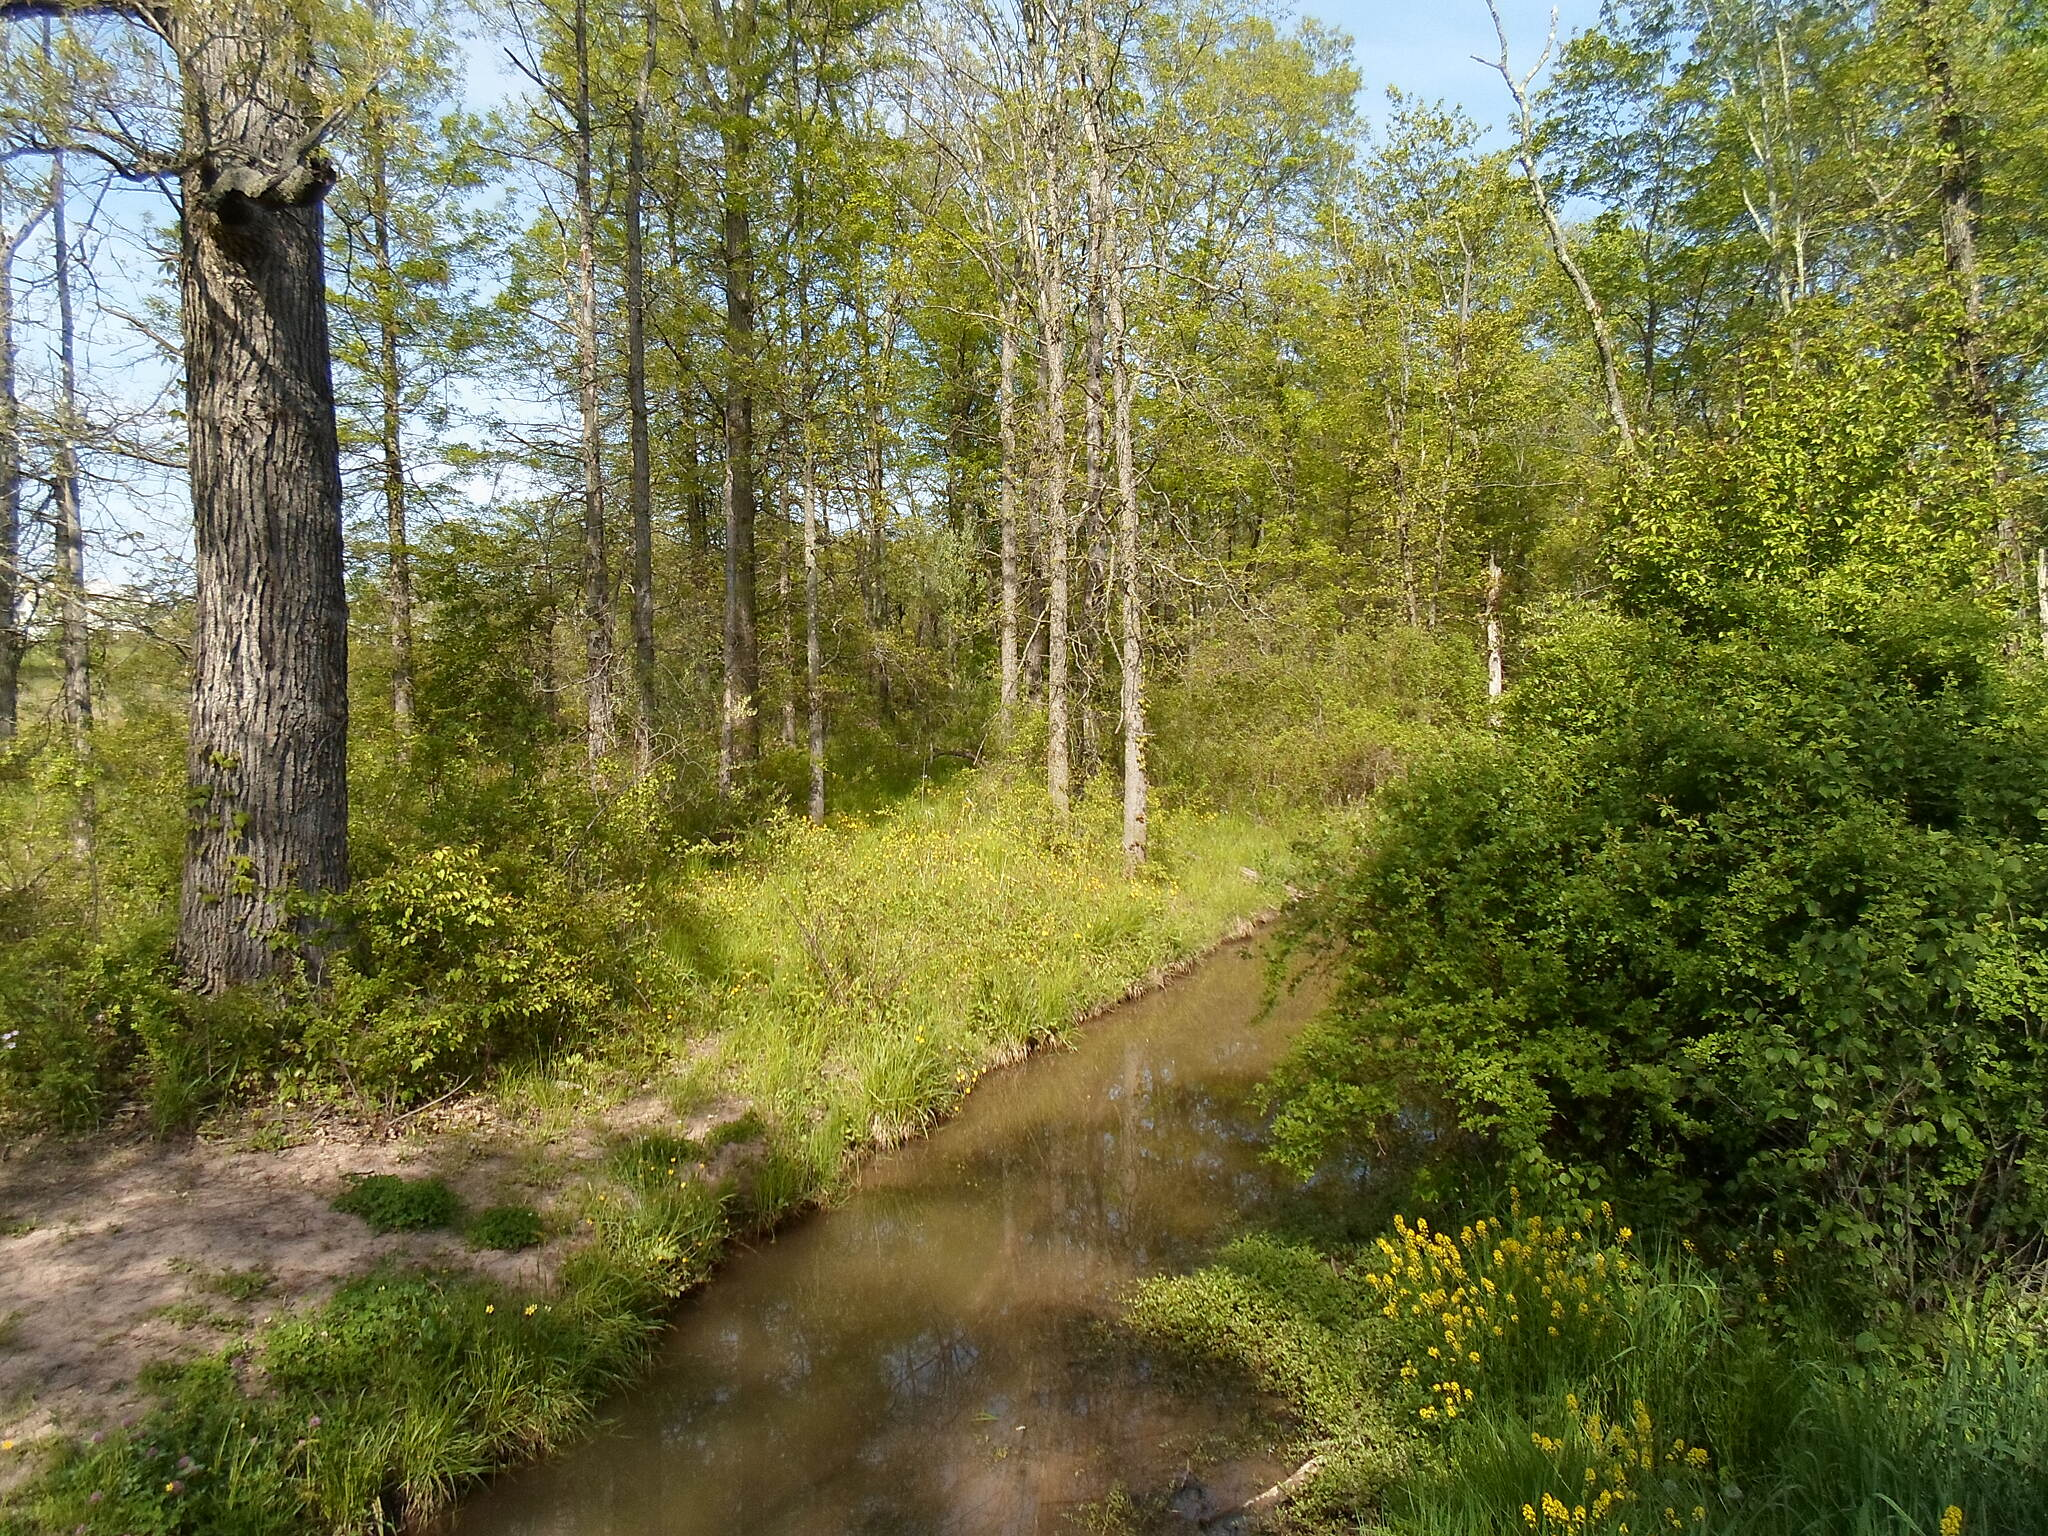 Barrel Run Trail Barrel Run Trail View of the stream that the trail parallels for most of its length; this was taken from the footbridge behind Trumbauersville Elementary School.